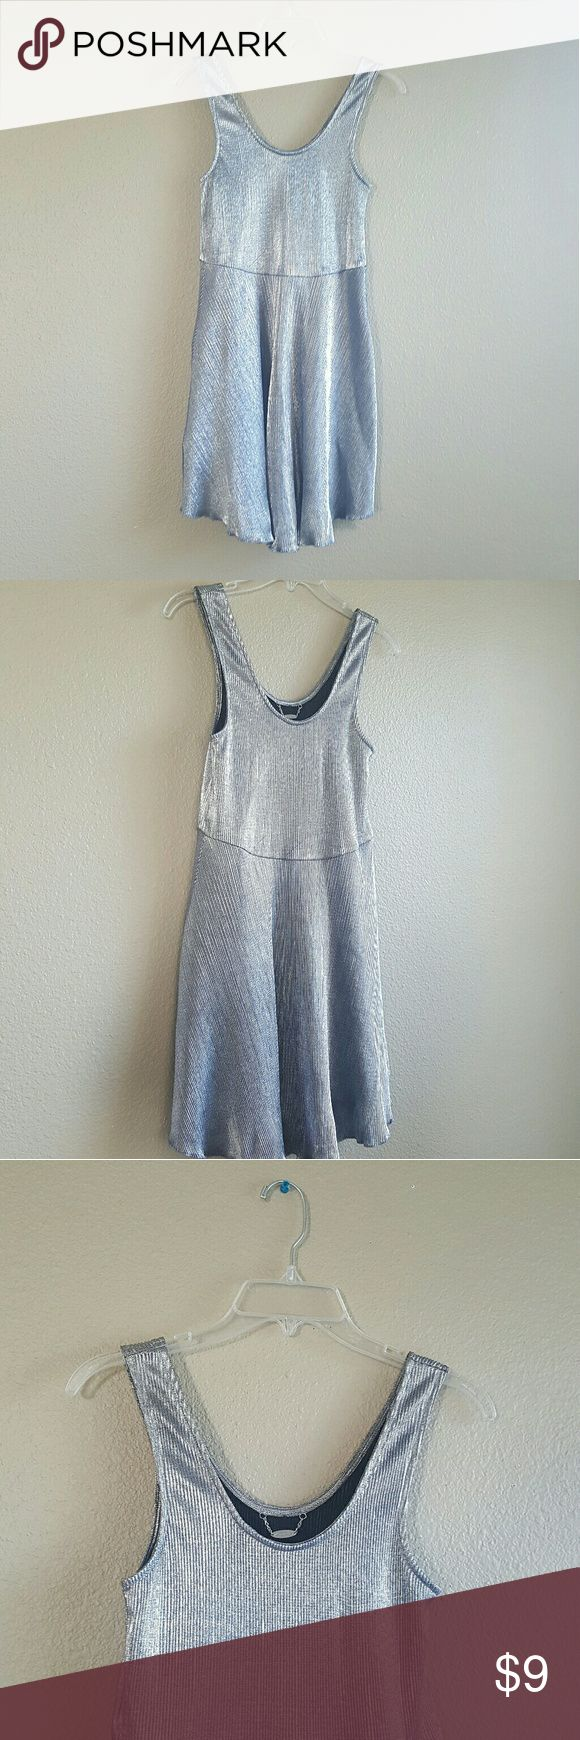 SHINY SILVER SUMMER DRESS This suuuuper cute dress sparkles and SHINES!!!! I am reposhing this dress because it is too small in the bust for me... It is in perfect condition and it's very comfortable!! Hits a tad above the knees and the way it lays on the body is suuuuper flattering!!! She's a beauty!! Ali & Kris Dresses